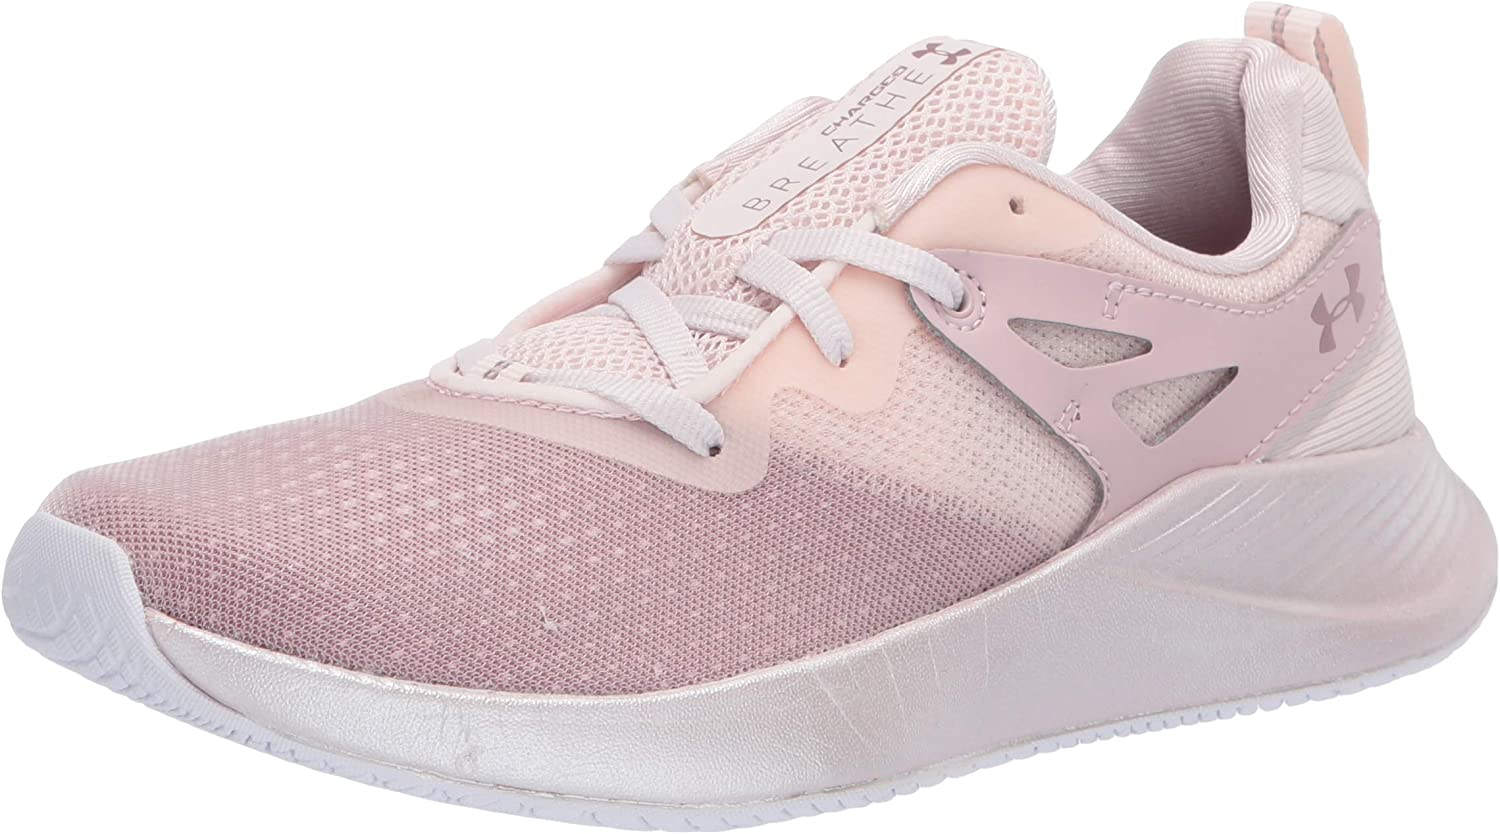 Under Armour Women's Charged Breathe Tr Trainer Cross Regular discount 2 shipfree